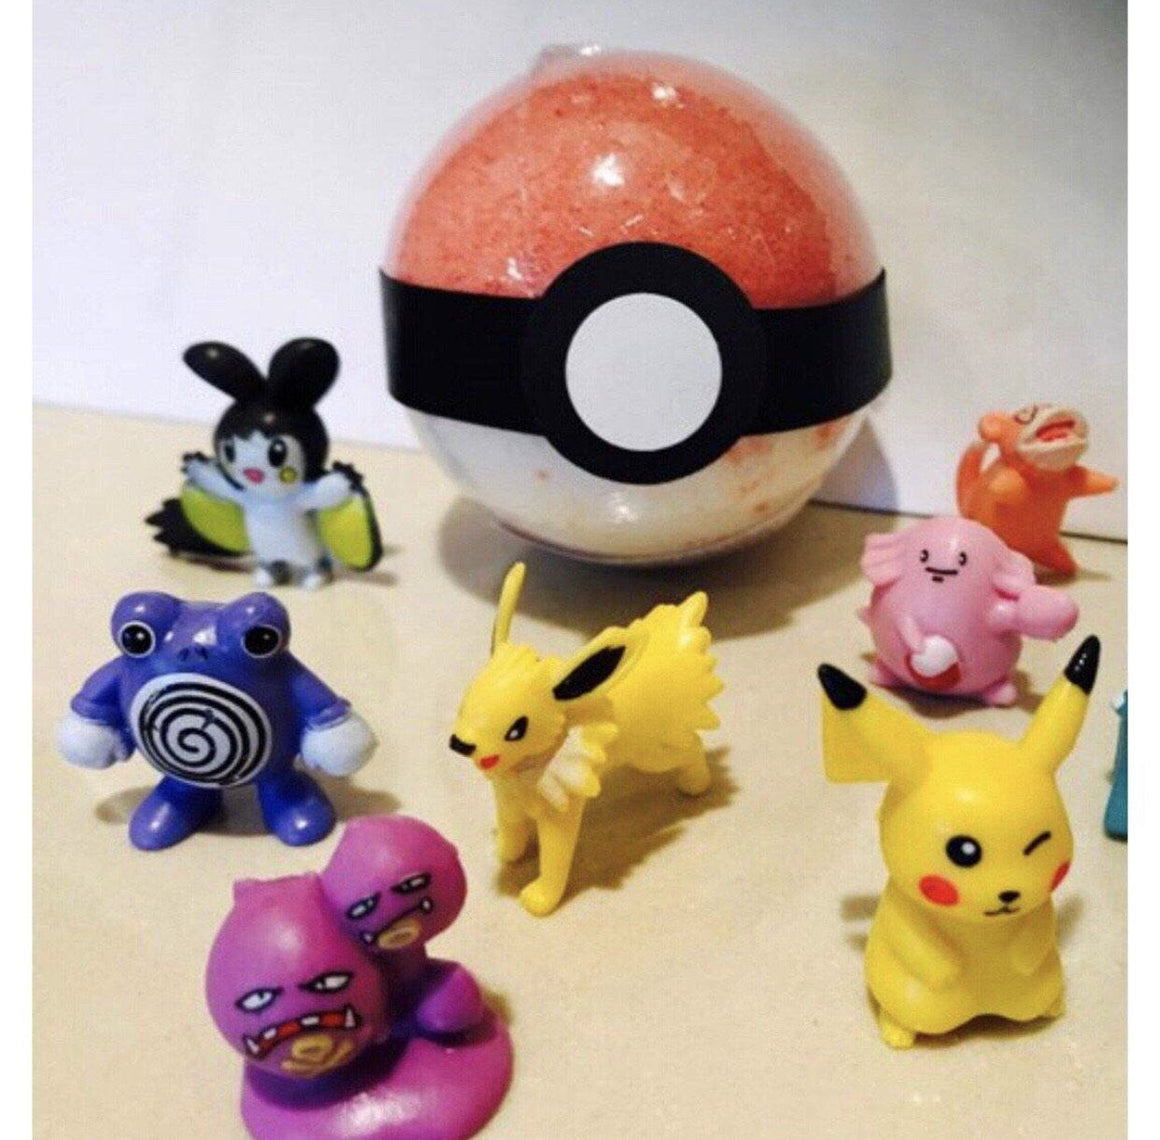 BATH FIZZY - LARGE SURPRISE TOY POKEBALL, BATH, Crafted Bath - Bon + Co. Party Studio